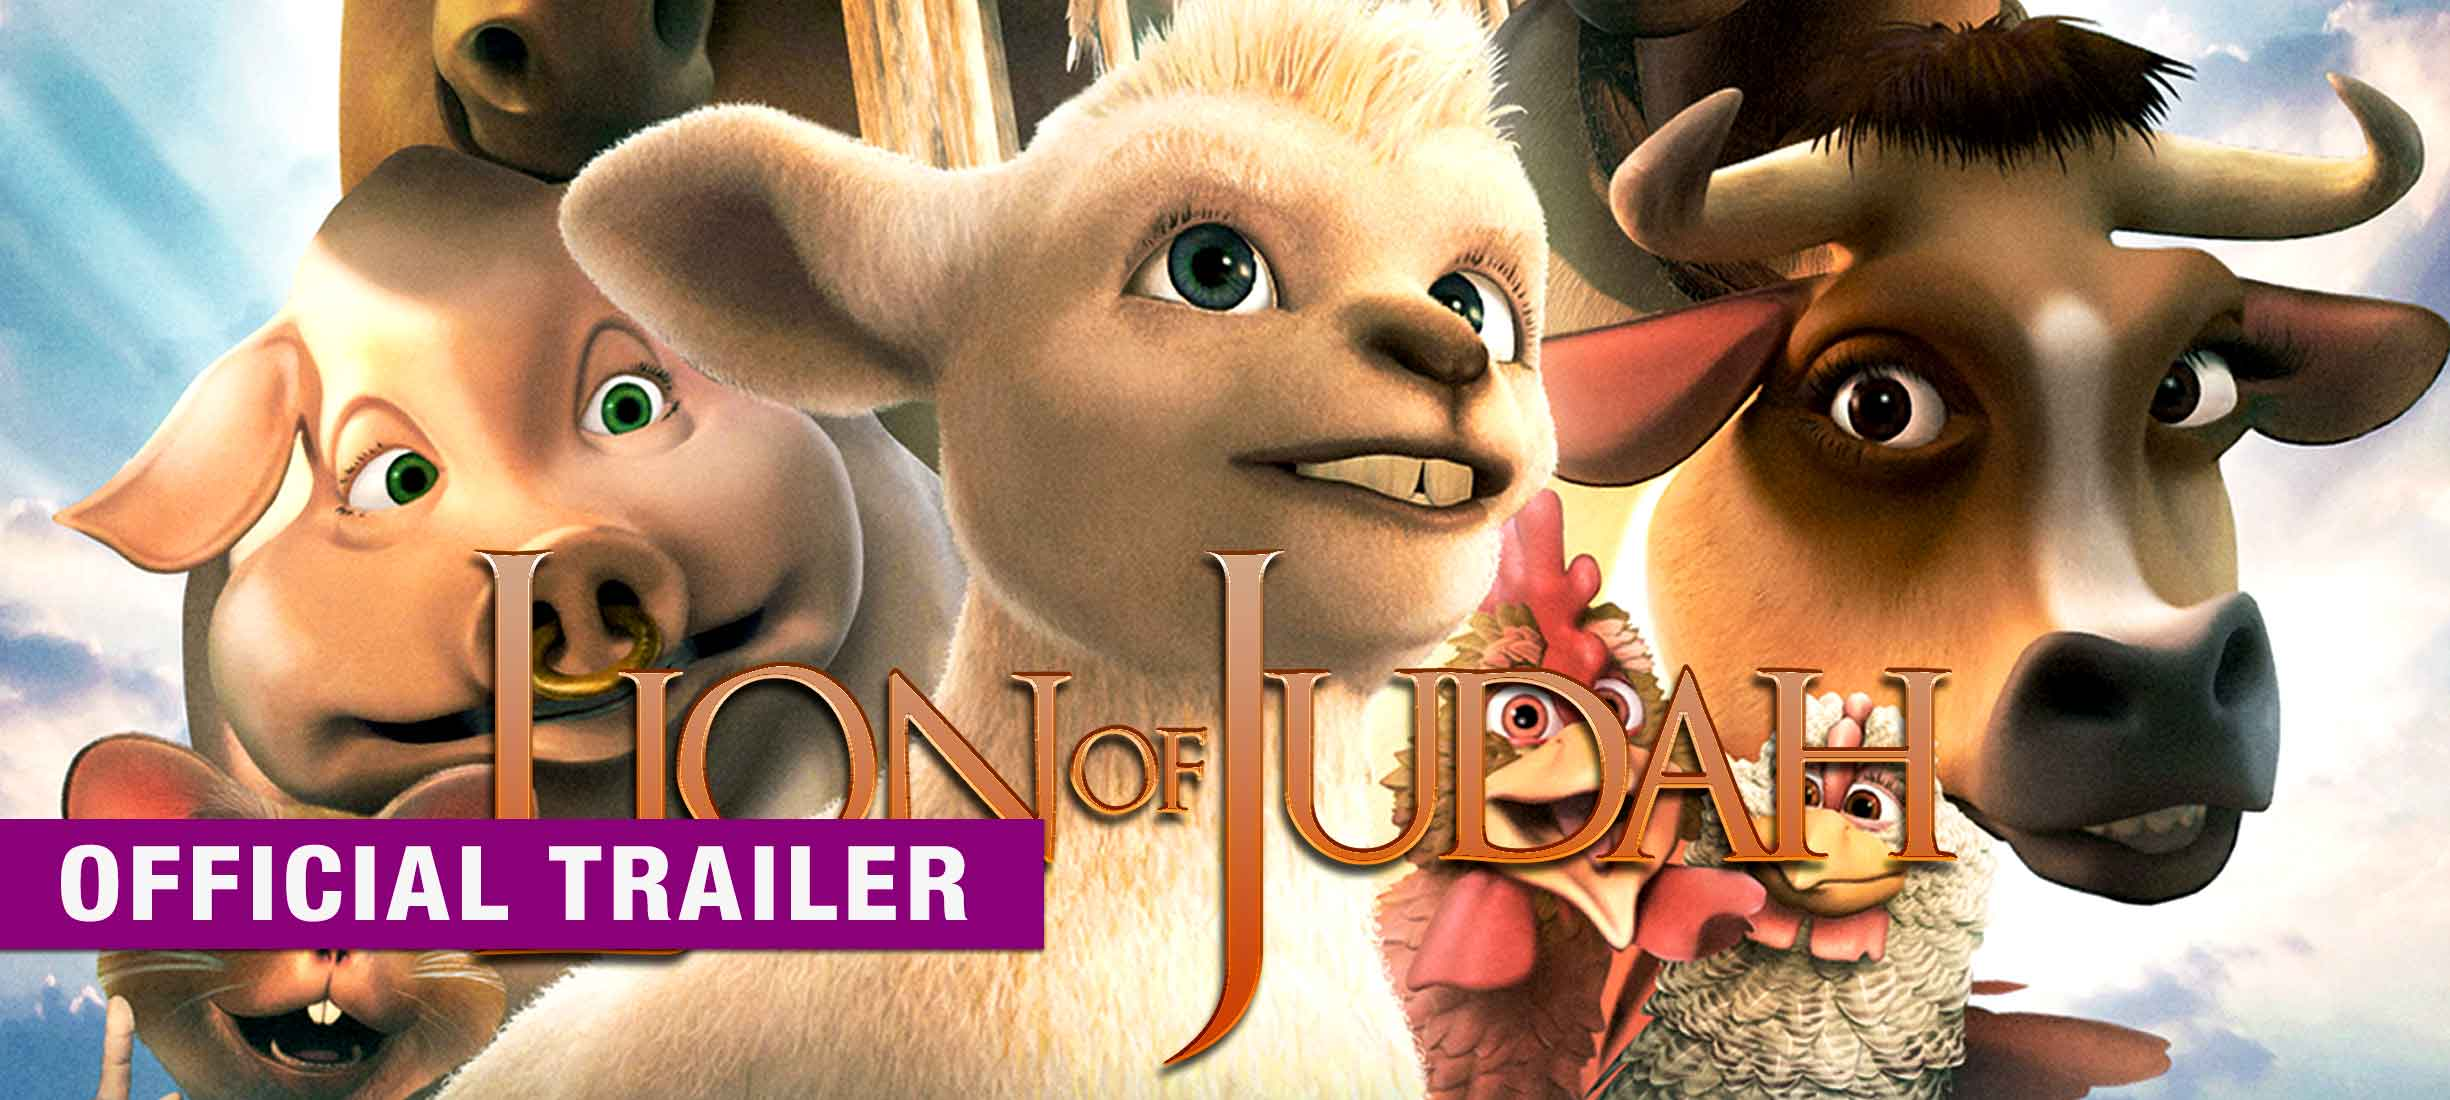 The Lion of Judah: Trailer